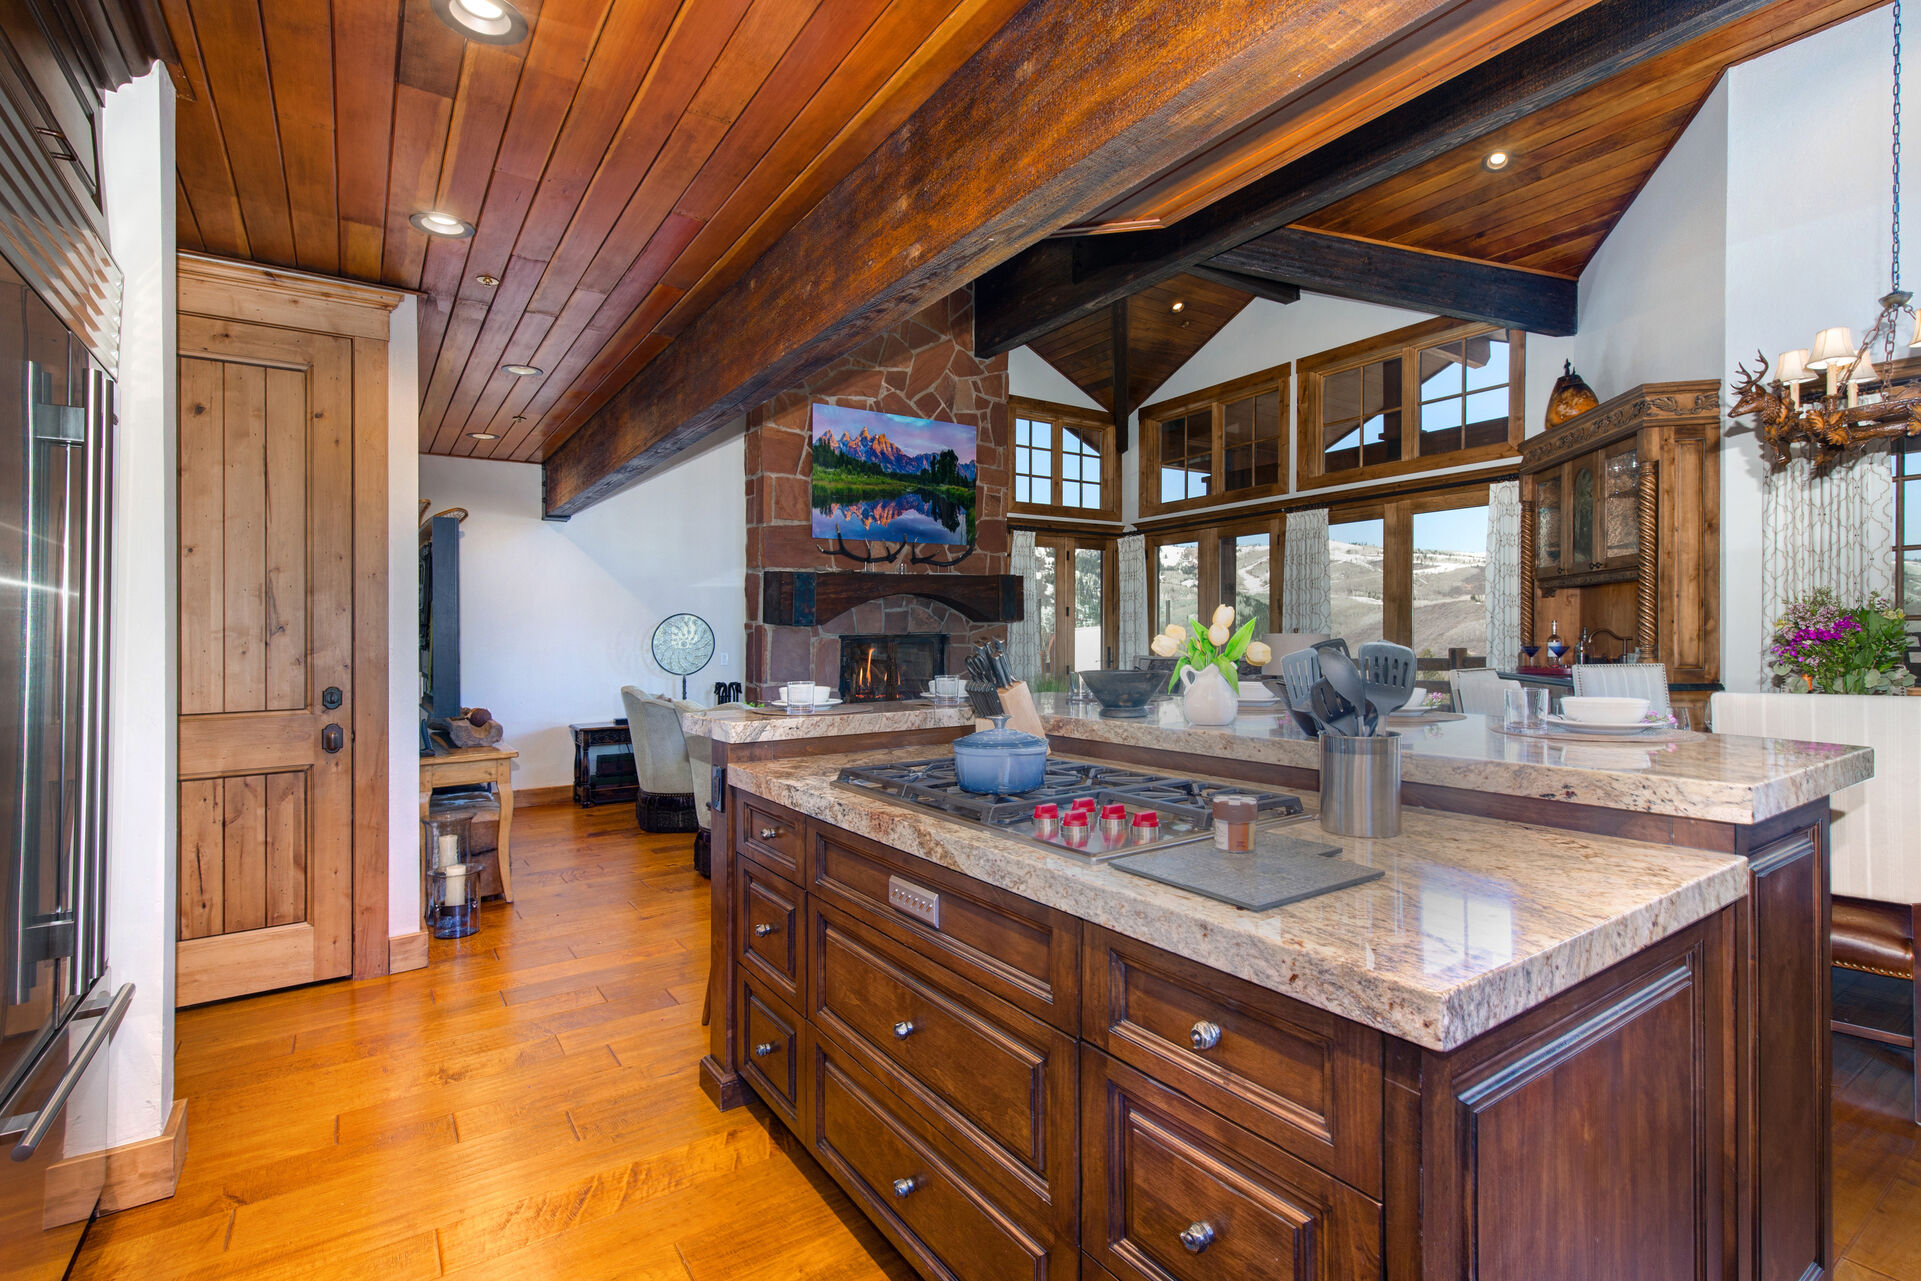 High-end Appliances Including a Wolf 5-Burner Gas Stovetop, Double Wolf Convection Ovens, SubZero Refrigerator and Wine Fridge